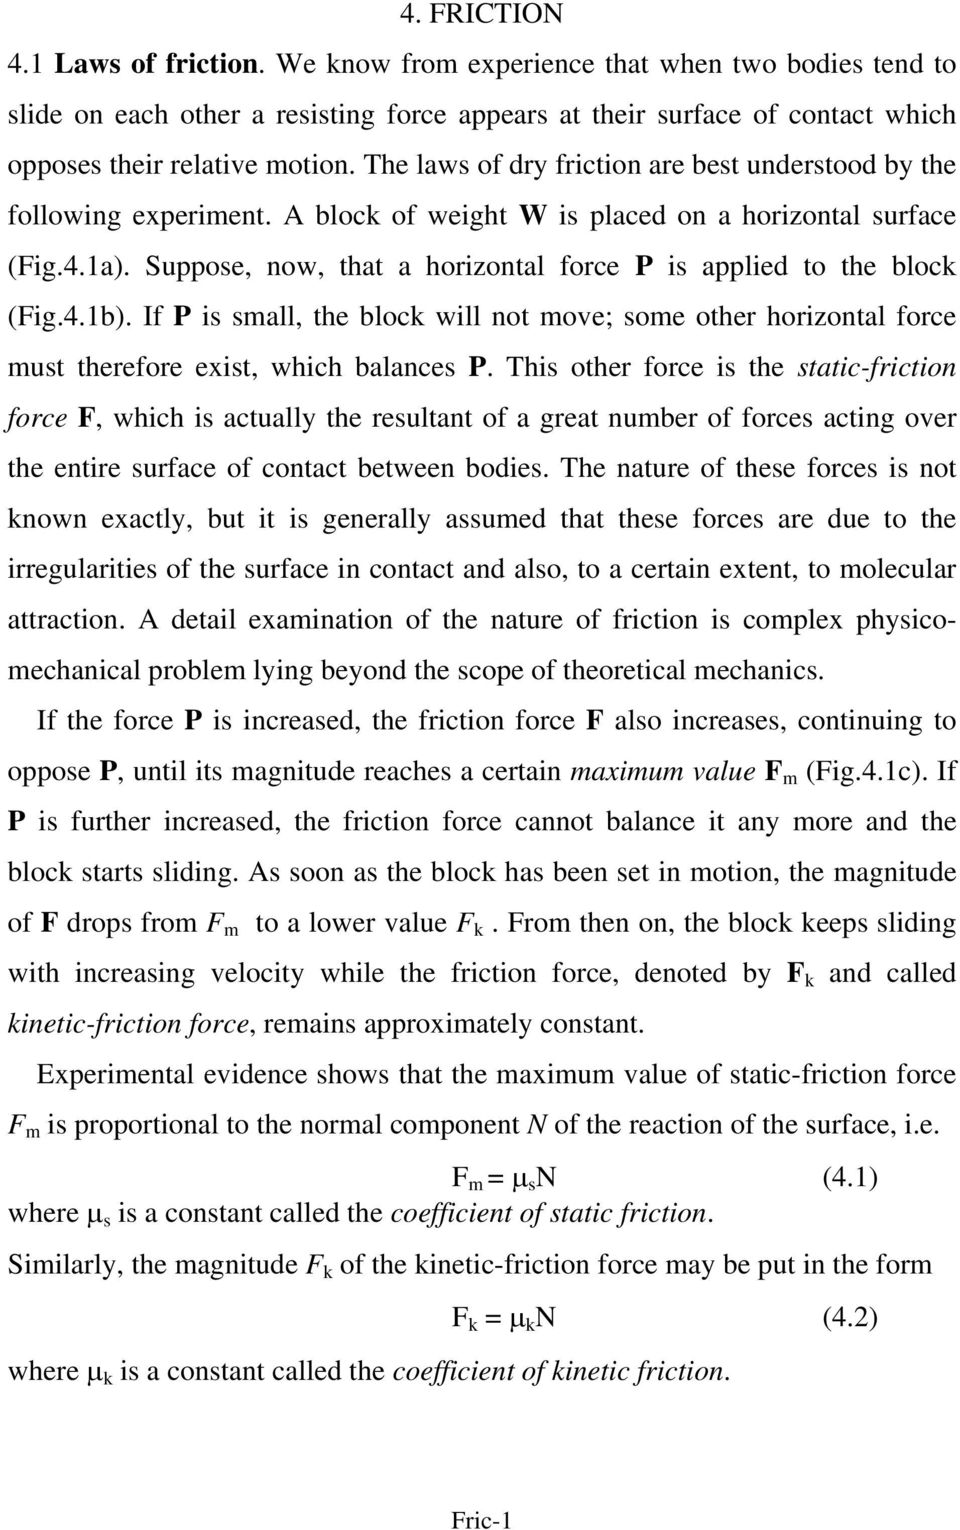 Suppose, now, that a horizontal force P is applied to the block (Fig.4.1b). If P is small, the block will not move; some other horizontal force must therefore exist, which balances P.